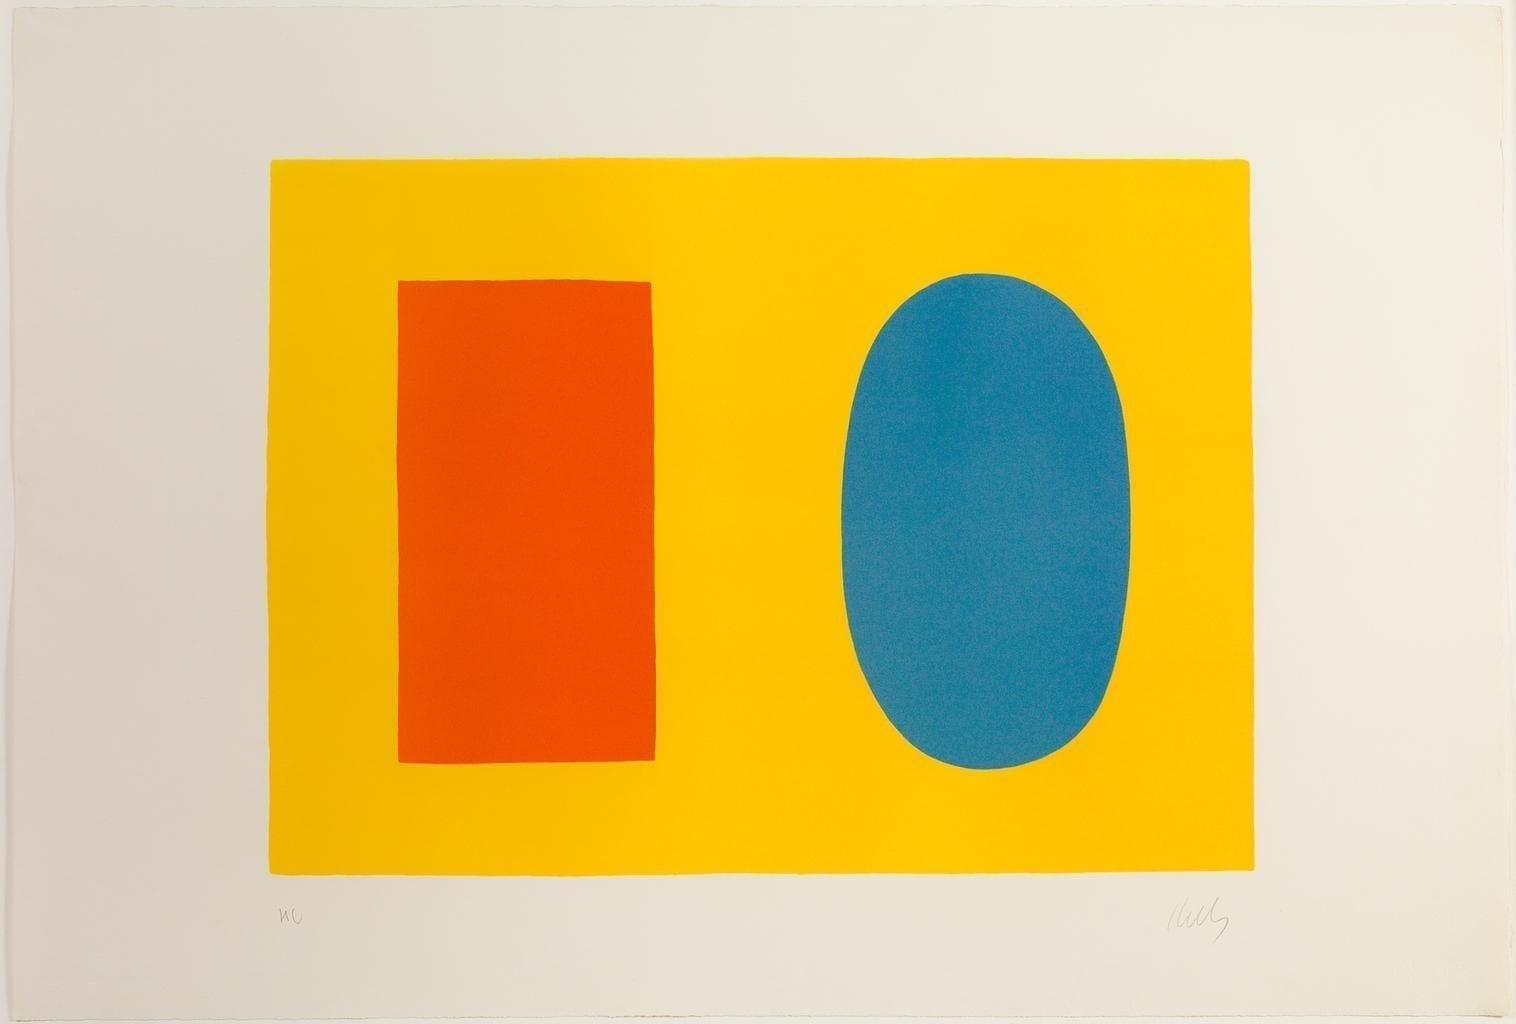 Orange and Blue over Yellow, 1964-65